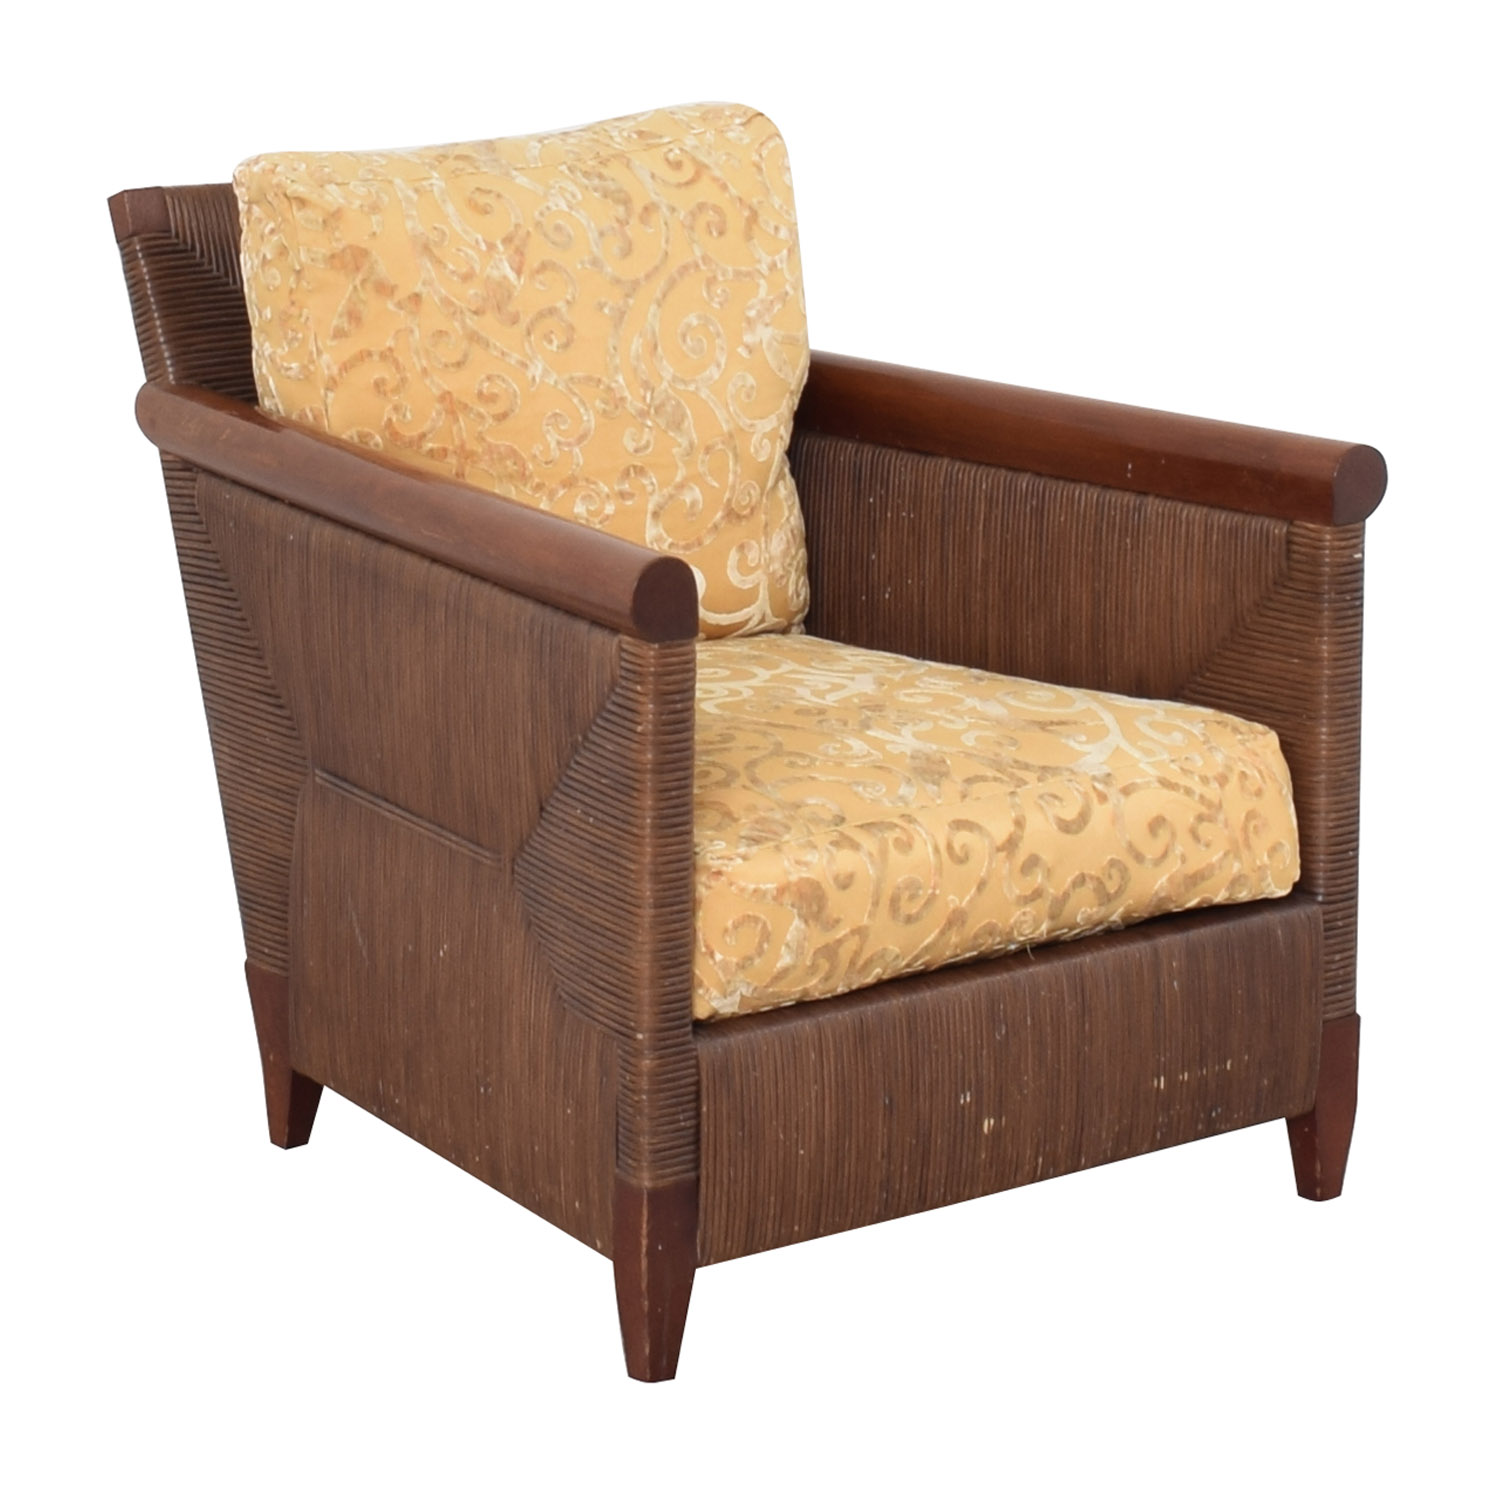 Donghia Donghia by John Hutton Mahogany and Wicker Lounger discount